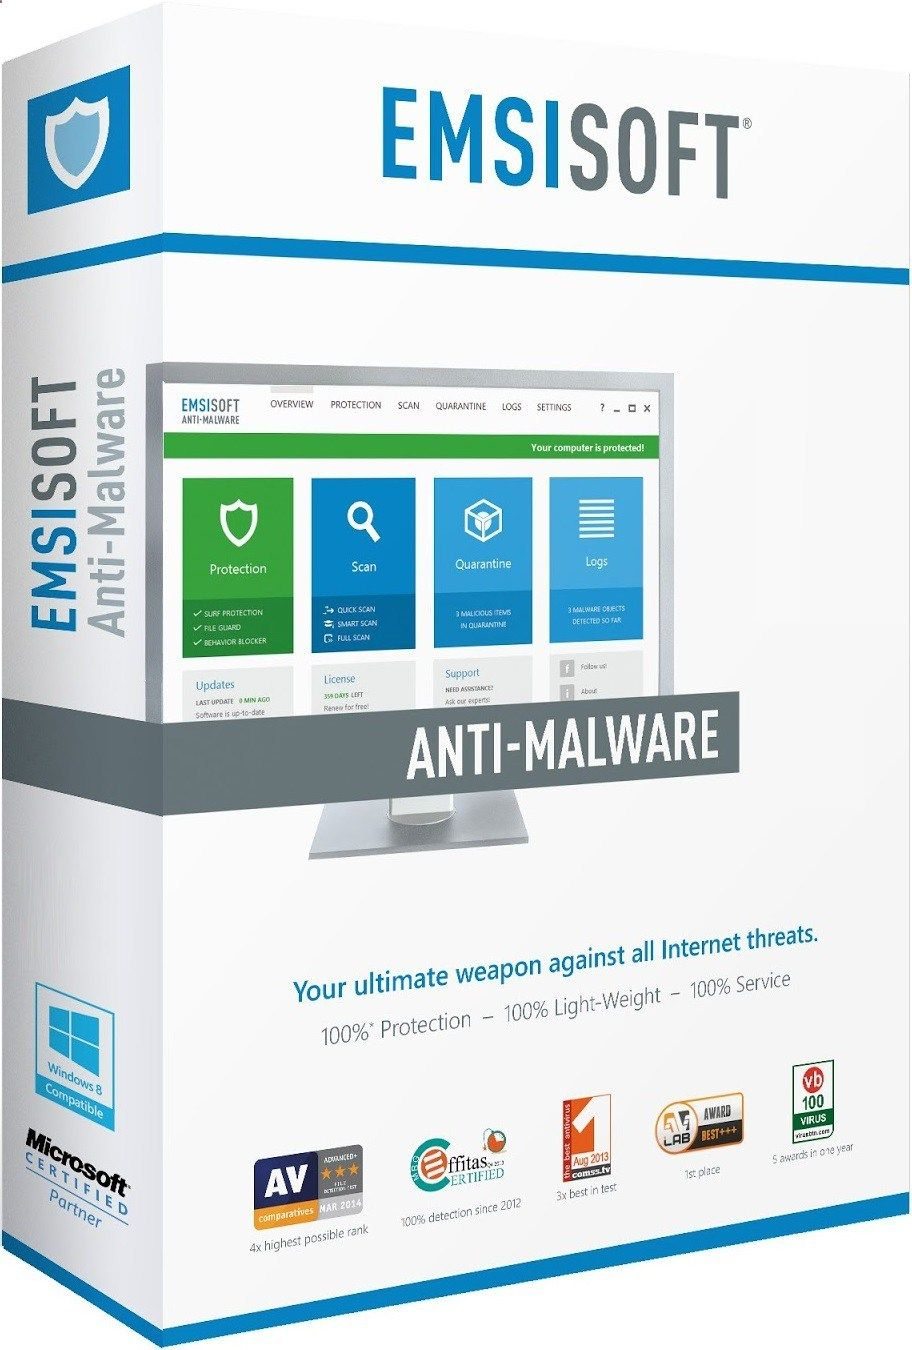 Emsisoft anti malware 11 5 1 crack license key full download from here and